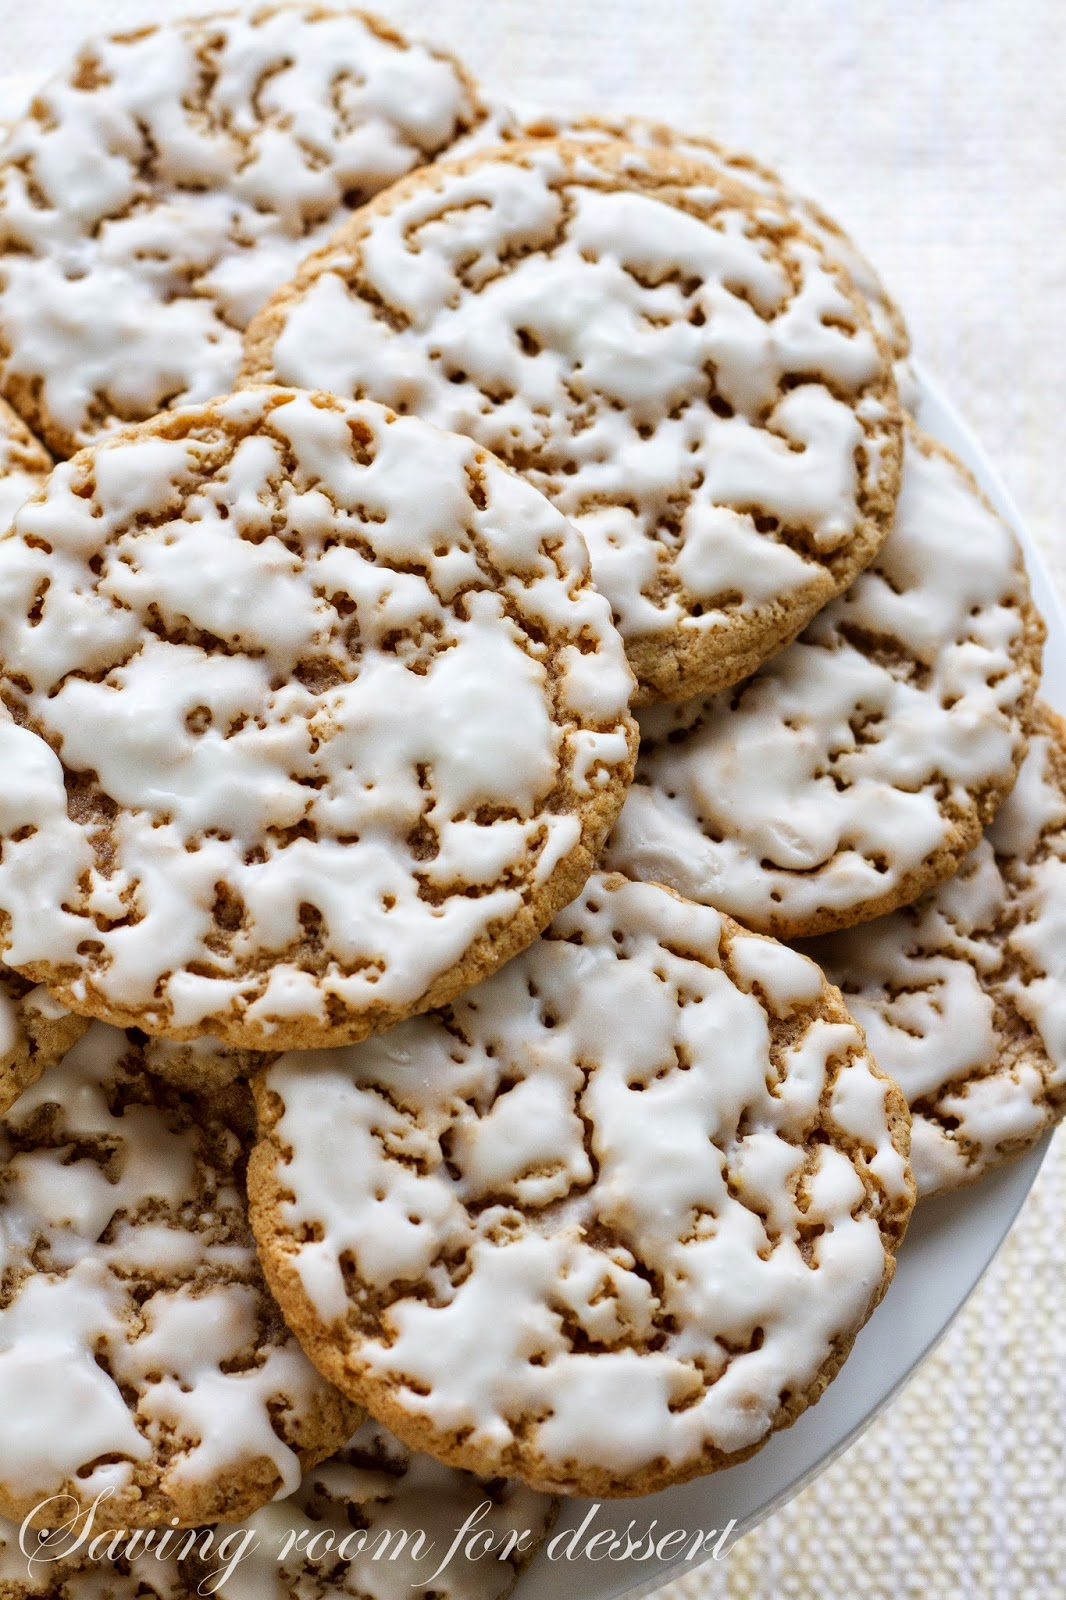 These 'homemade' Iced Oatmeal Cookies are so much better than store ...